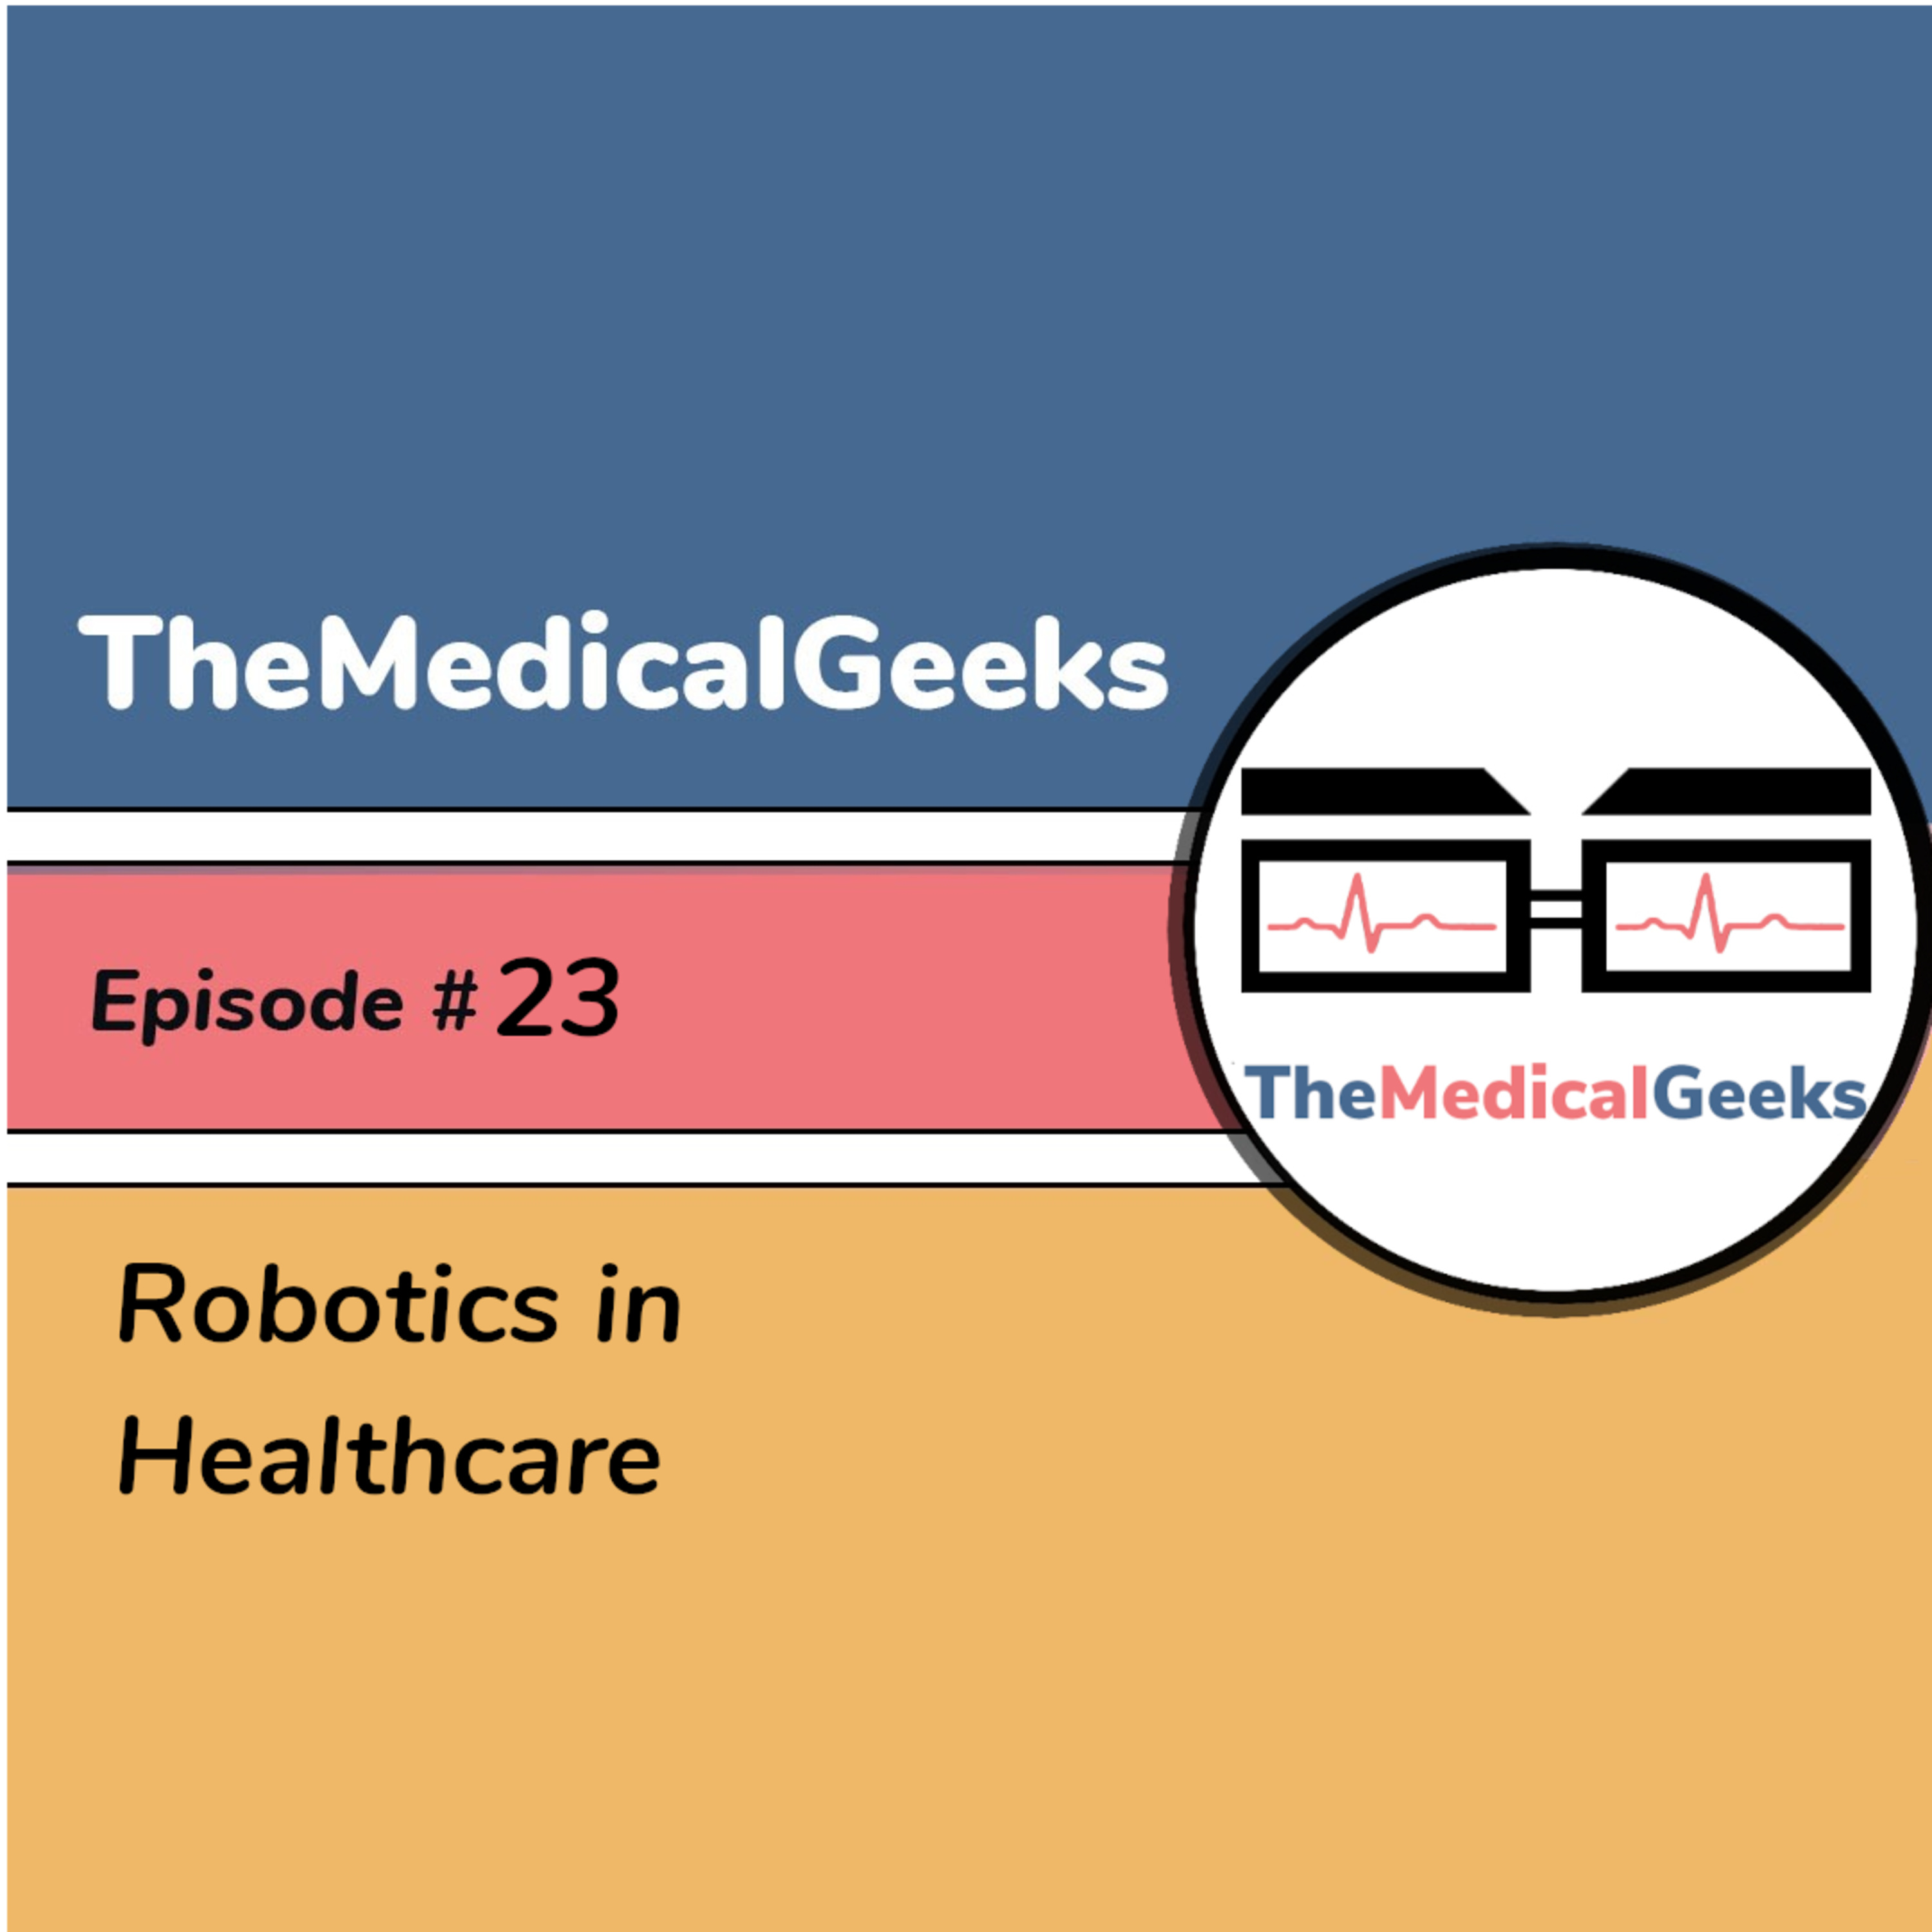 #23 Episode 23: Robotics in Healthcare